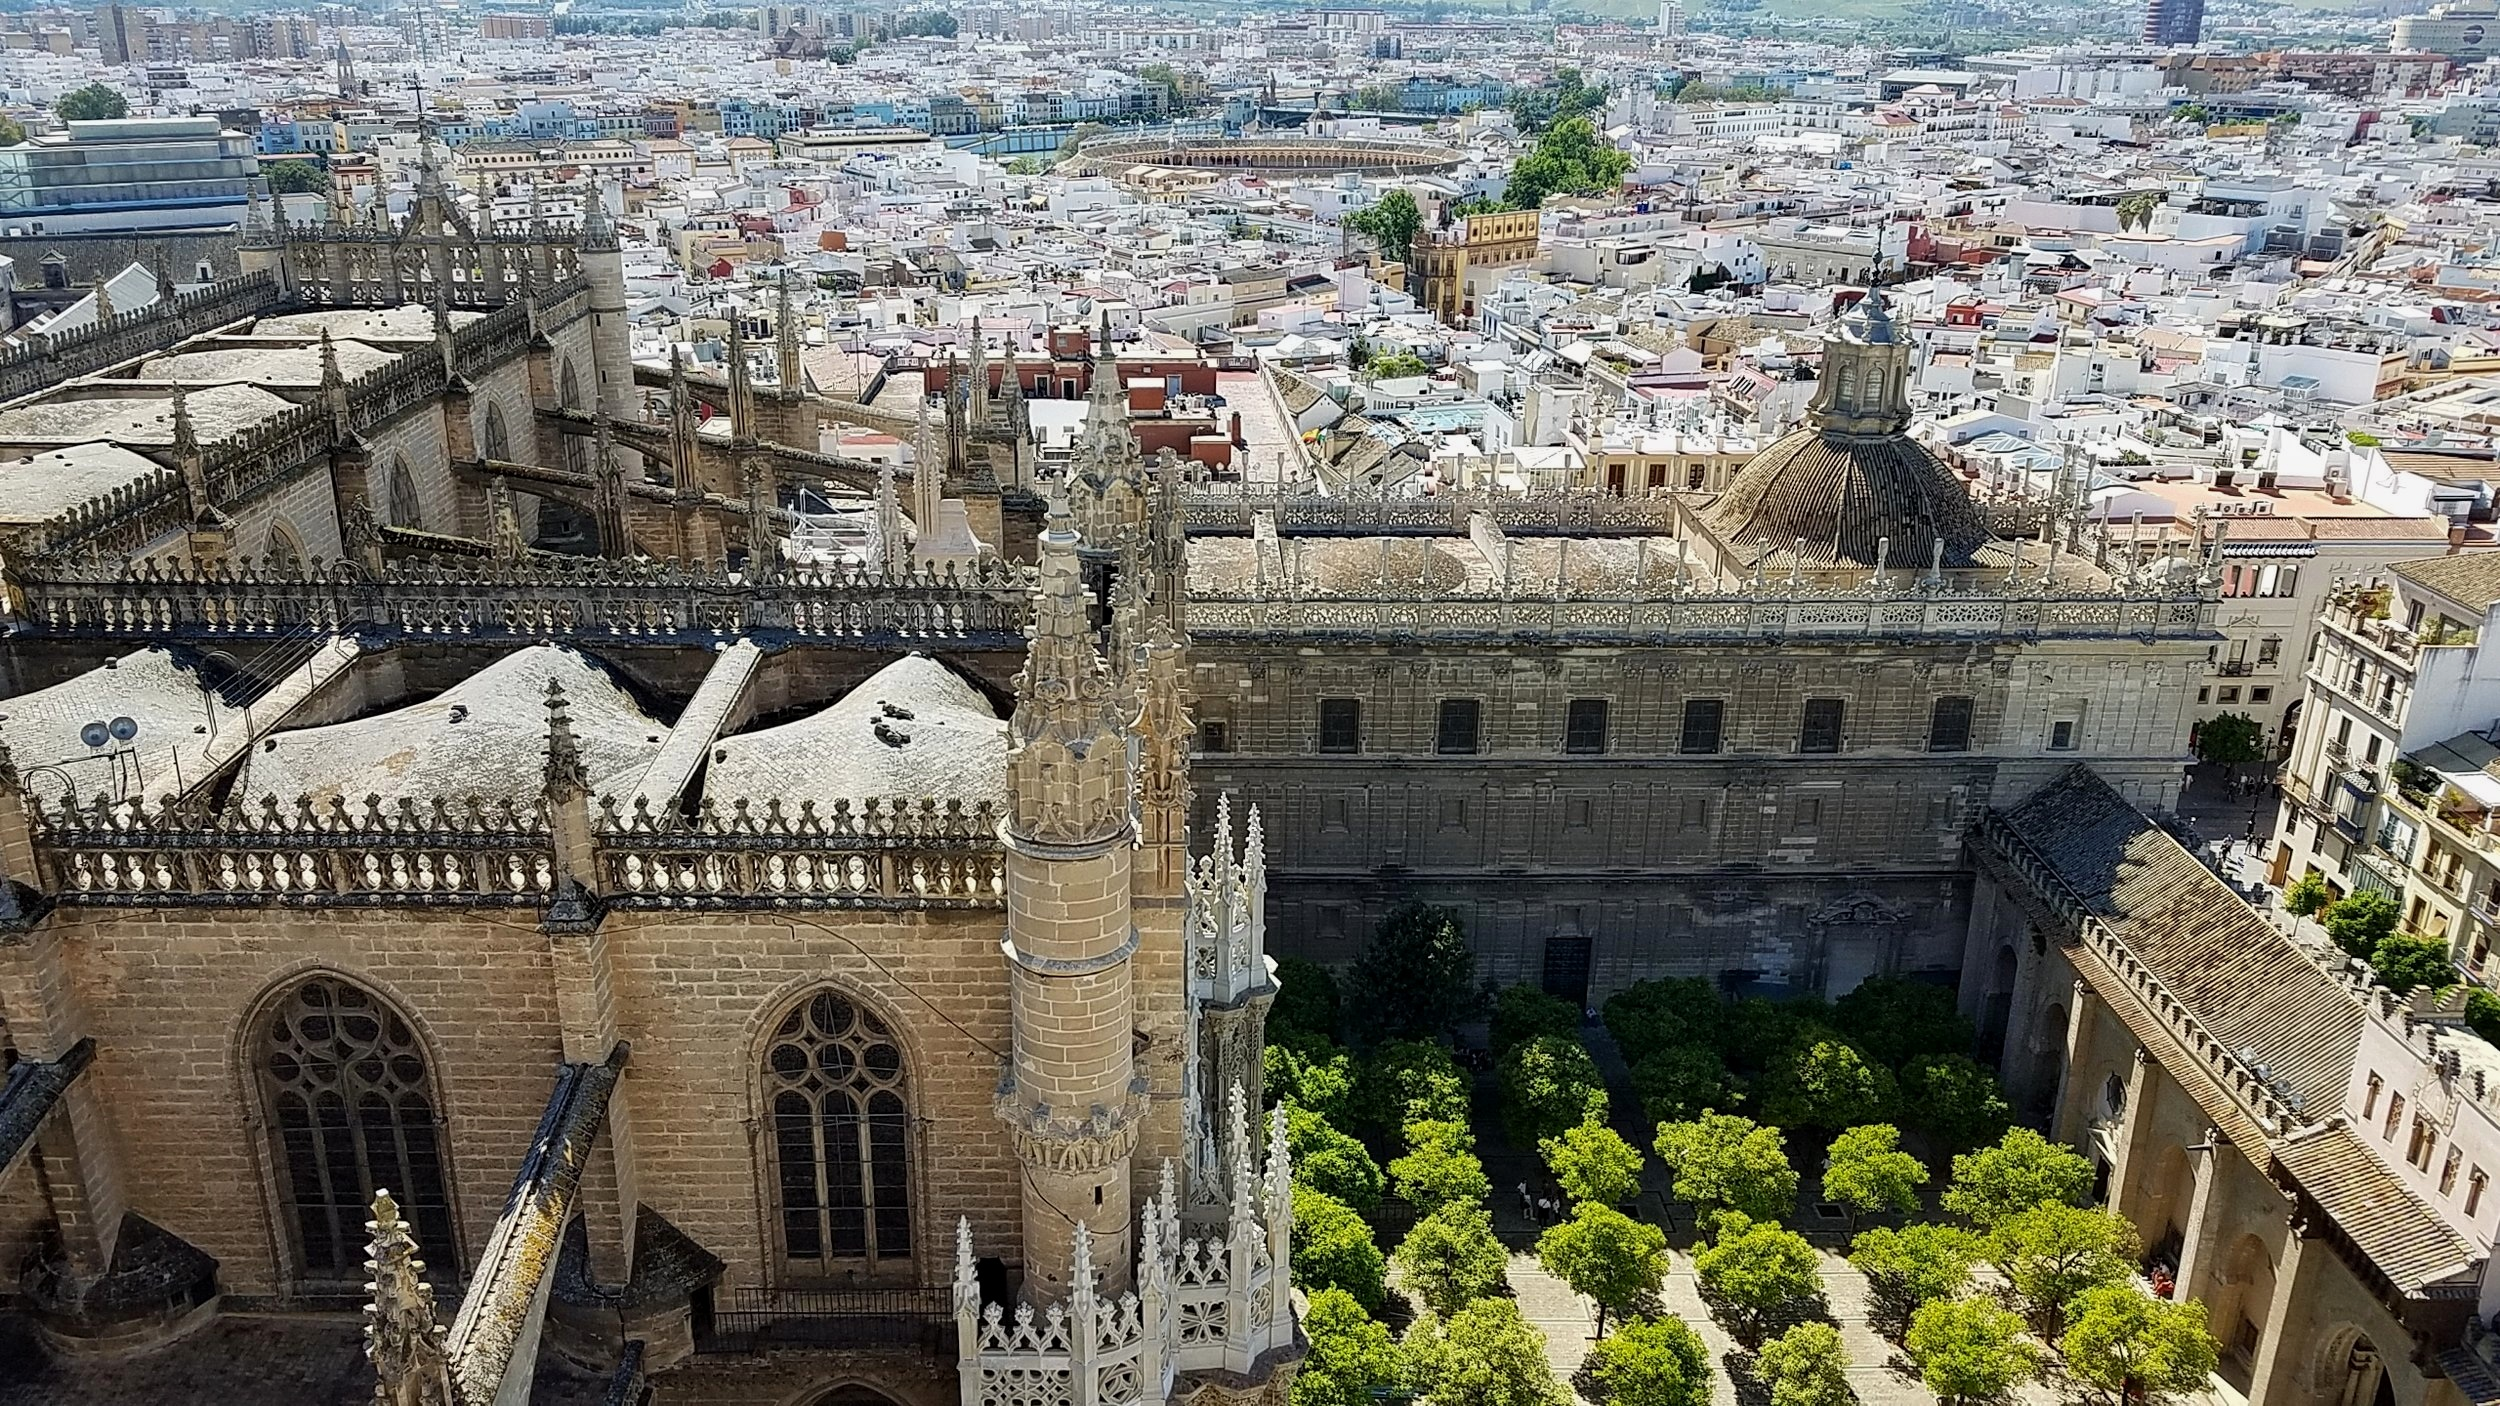 Overlooking the Cathedral of Seville from inside the Giralda, the belltower.